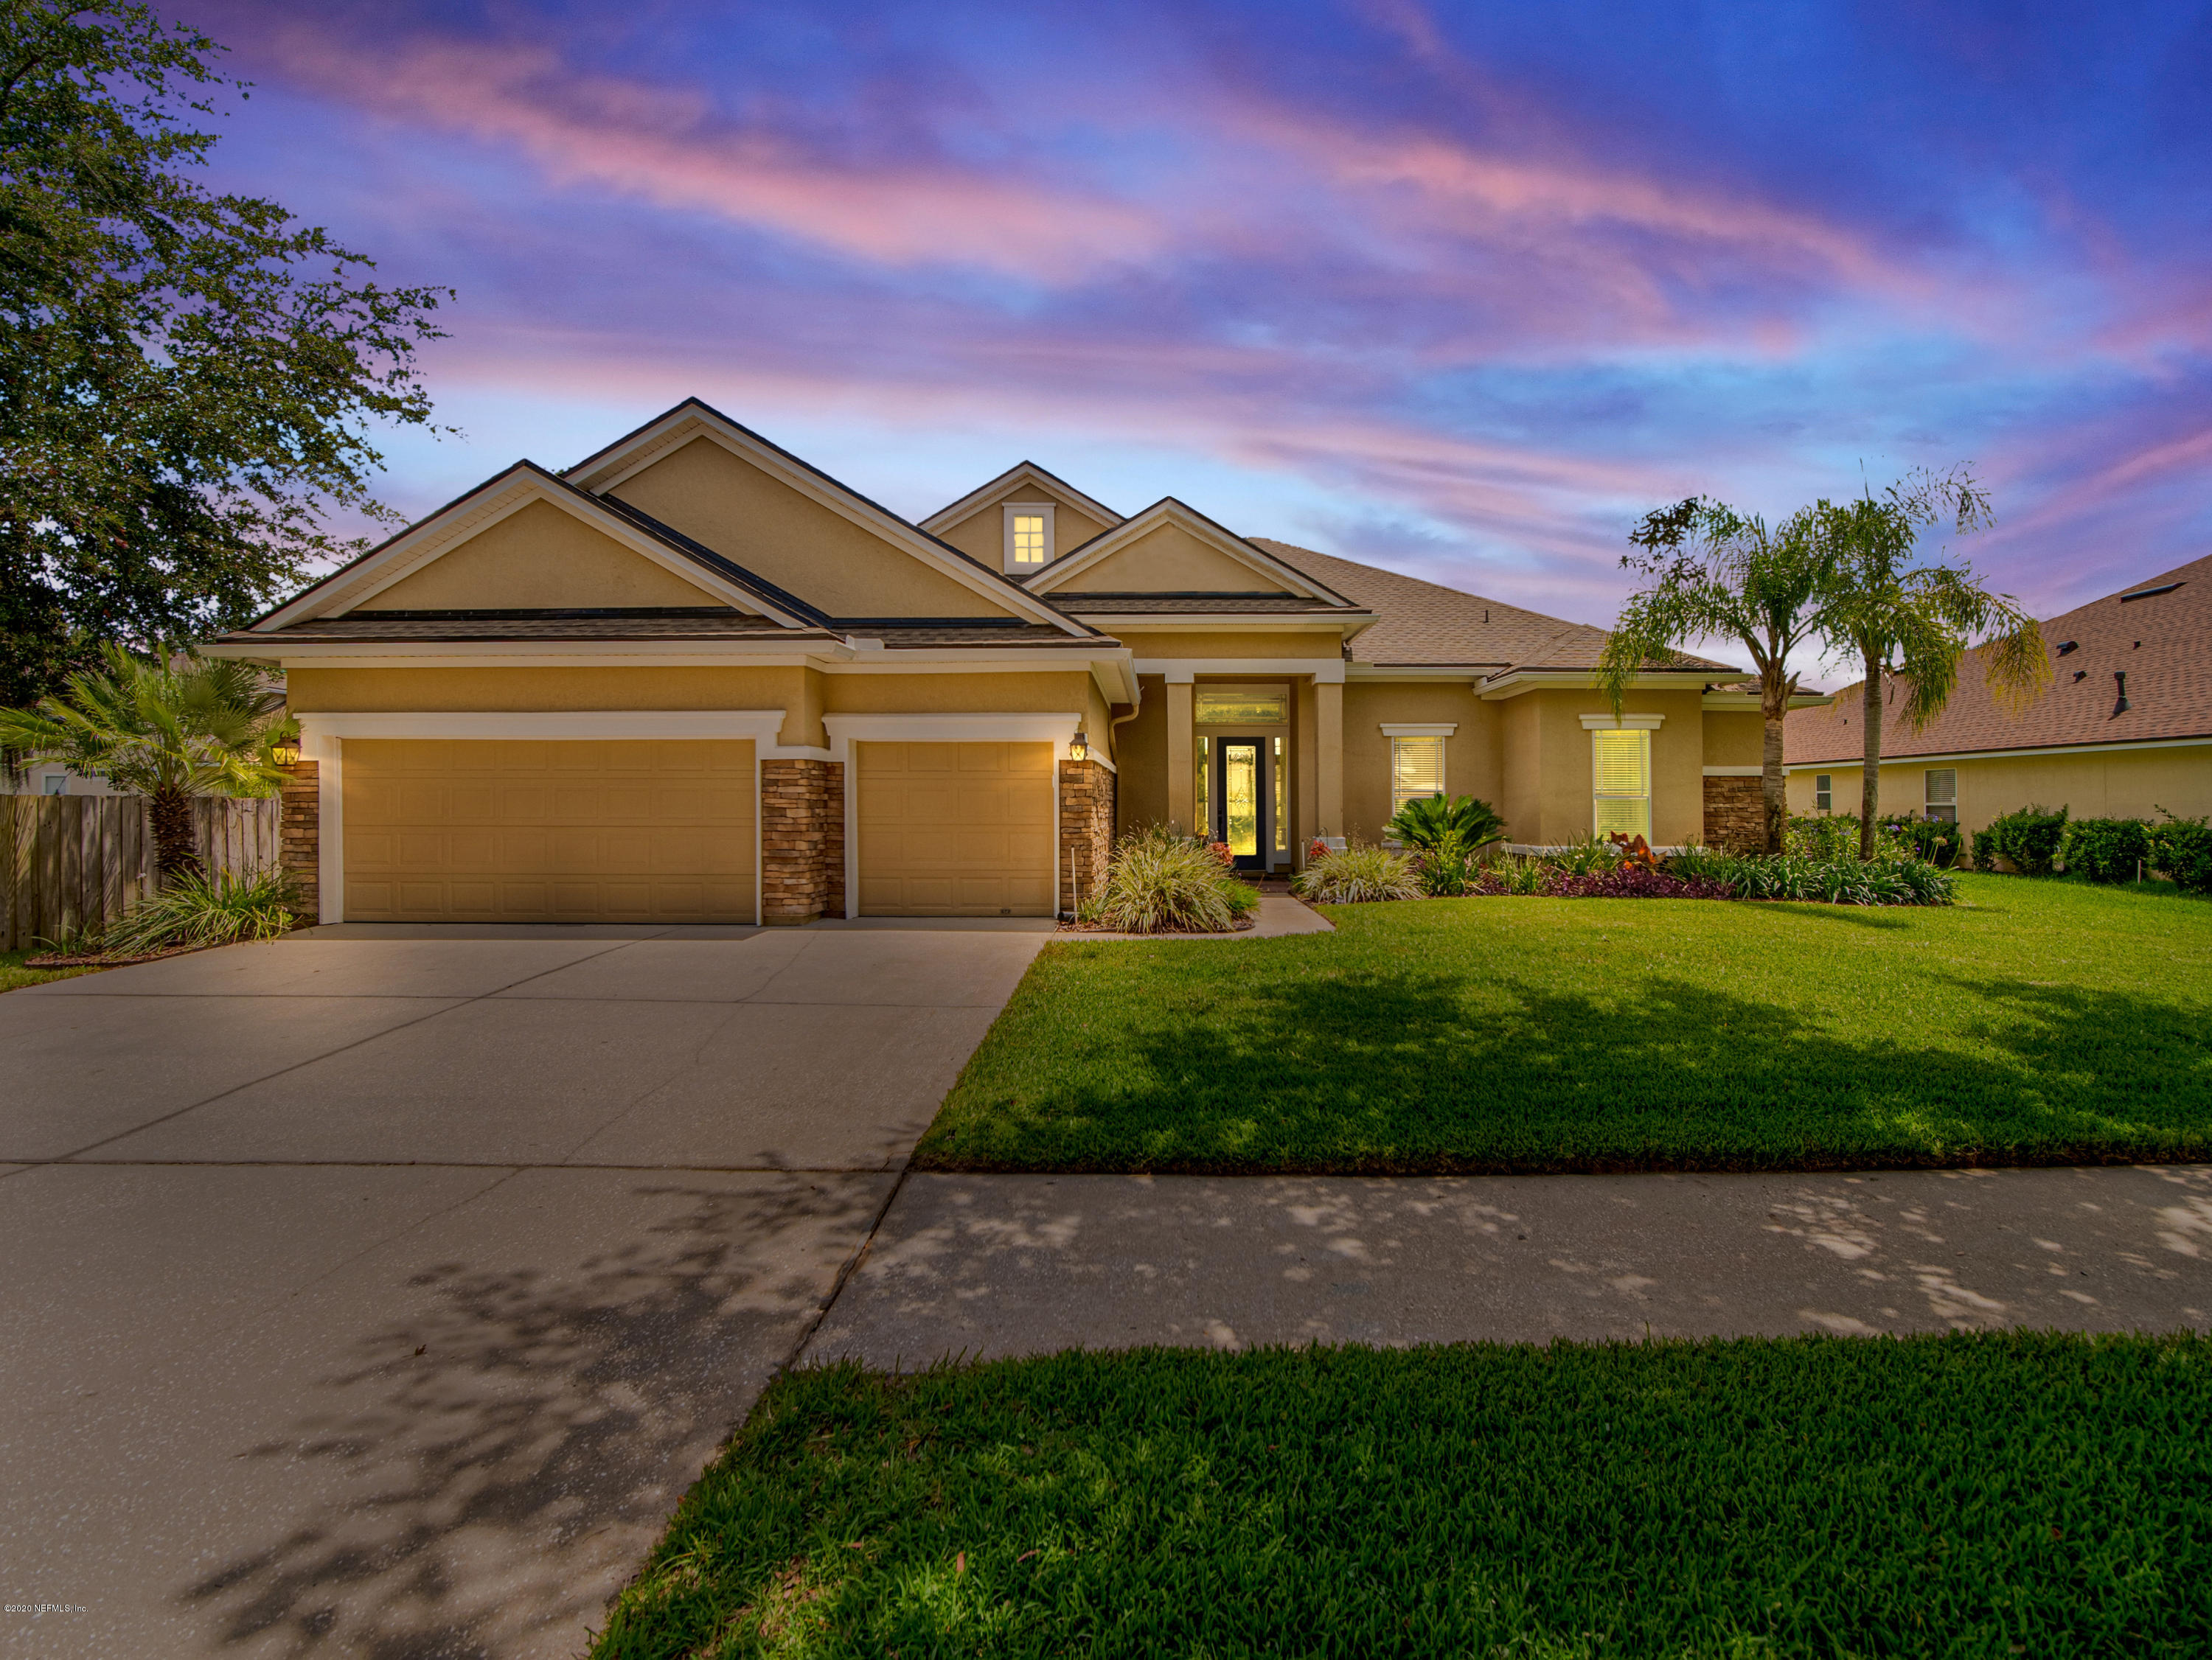 Photo for 6382 Crab Creek DR, JACKSONVILLE, FL 32258 (MLS # 1059090)